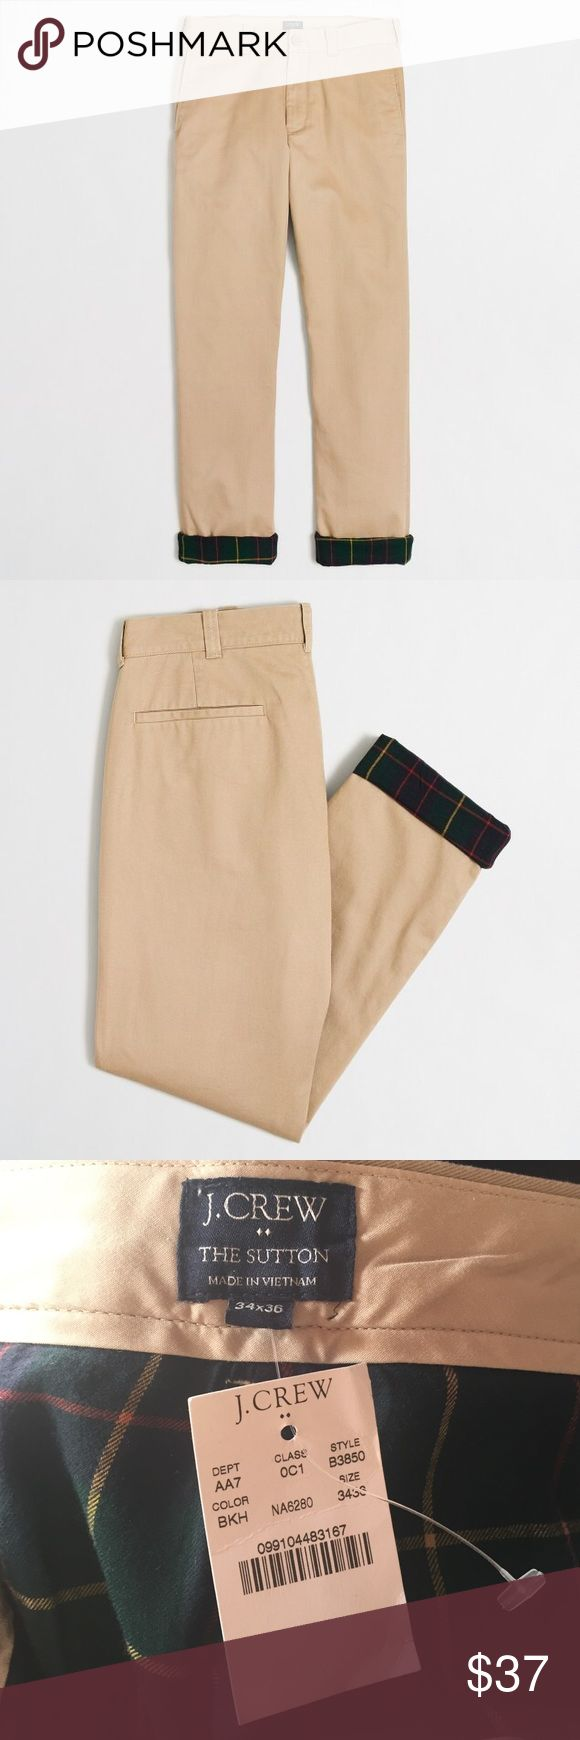 "J.Crew Sutton Flannel-Lined Chino in British Khaki ⚡️Cotton/waist 34 length 36 ⚡️Sits below waist, slim through hip and thigh, with a slim leg. ⚡️15"" leg opening (based on size 32/32). ⚡️Zip fly. ⚡️Off-seam pockets, back welt pockets. ⚡️Machine wash. J. Crew Pants Chinos & Khakis"